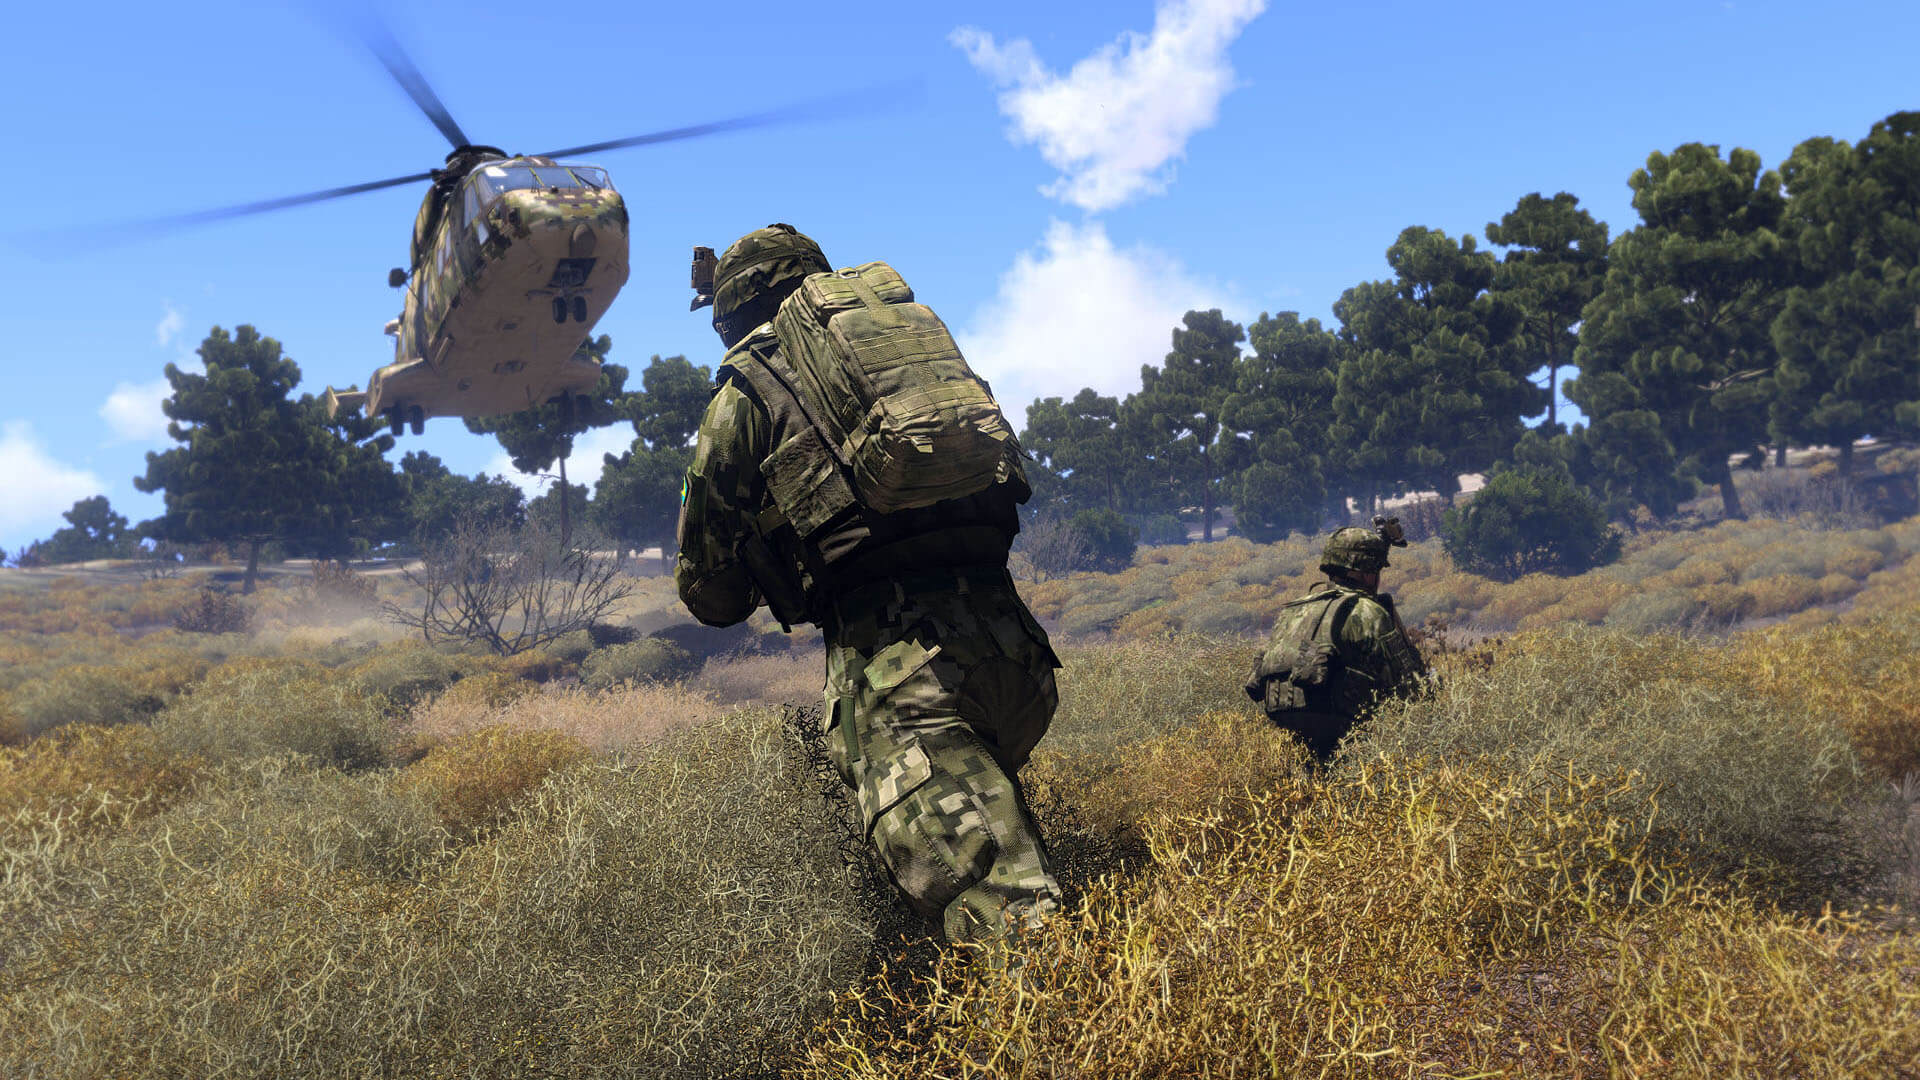 Arma III is a good example of a fairly realistic shooter